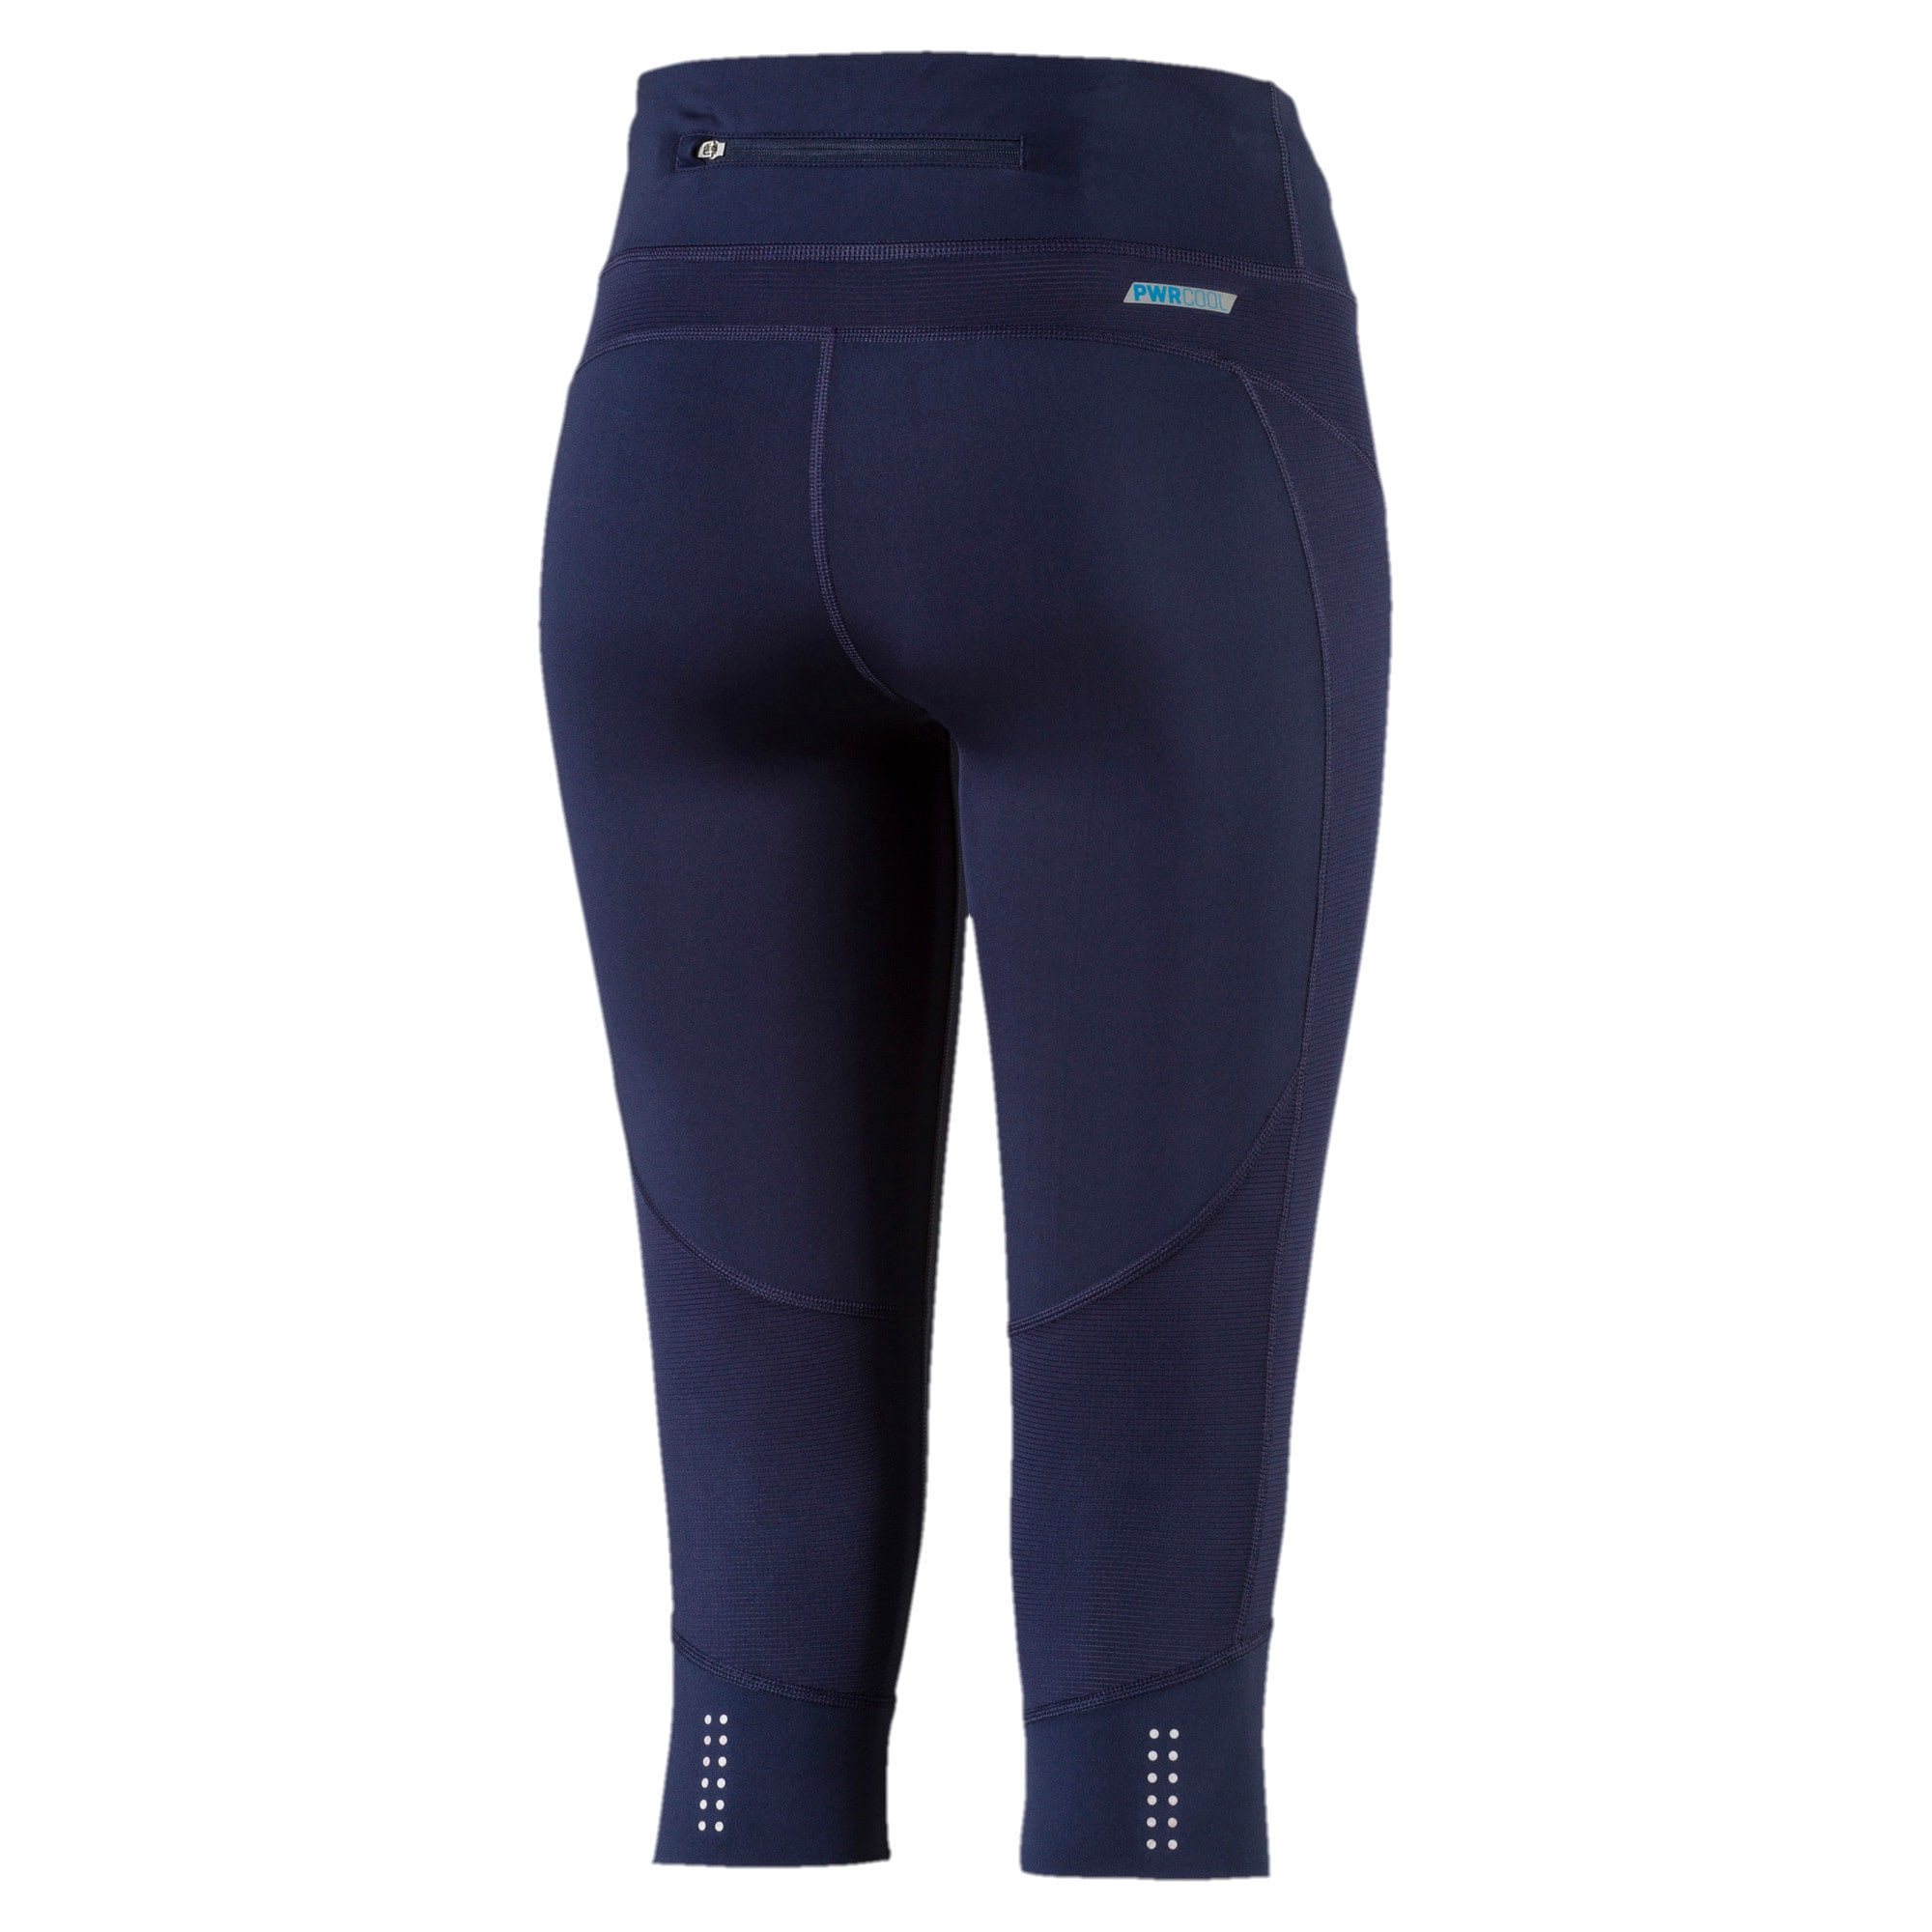 Thumbnail 5 of Running Women's PWRCOOL Speed 3/4 Tights, Peacoat, medium-IND